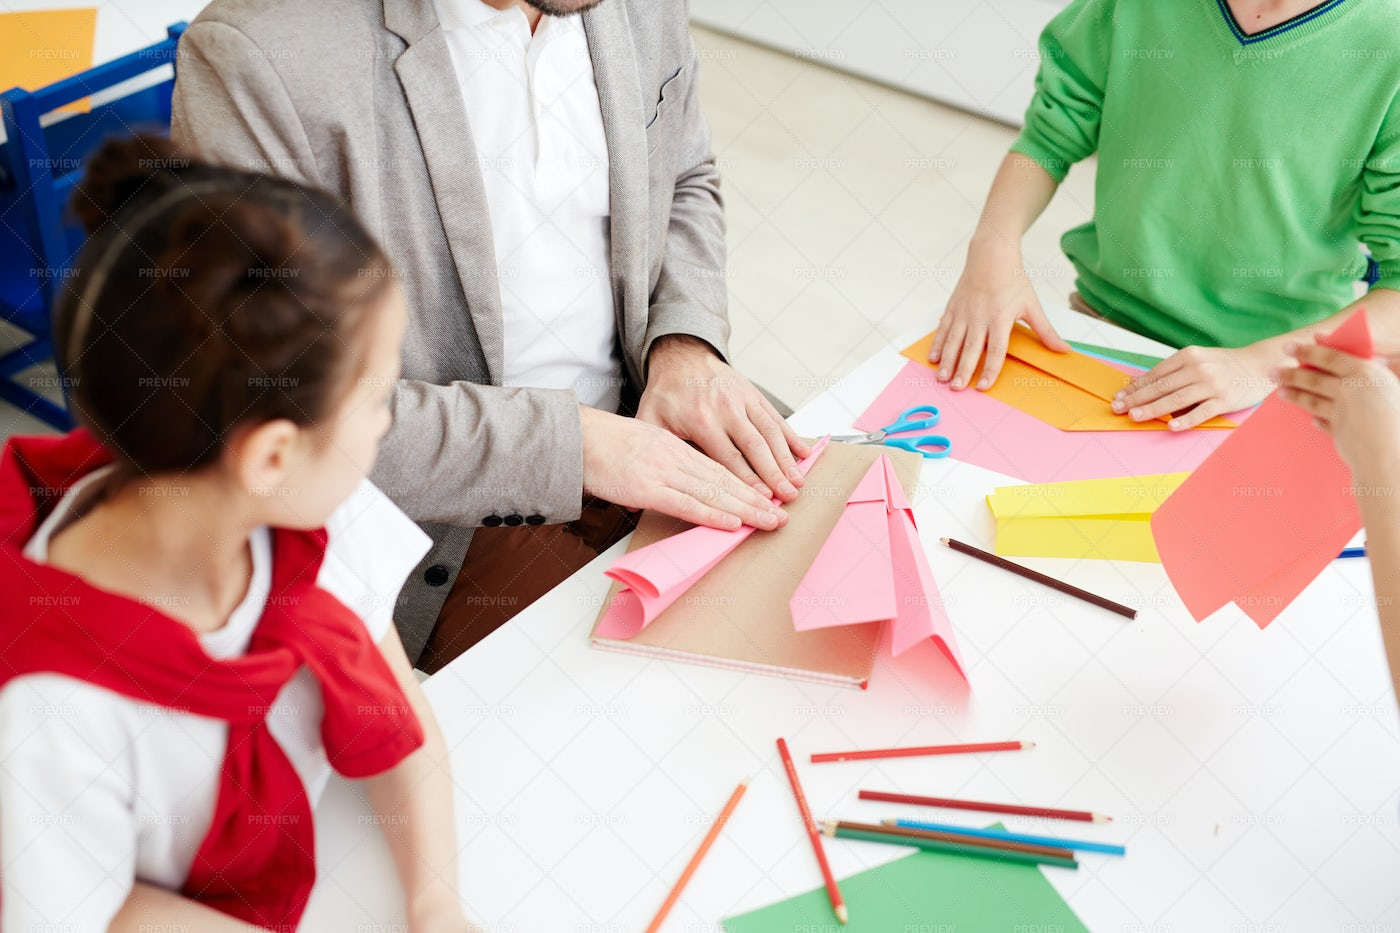 Kids Making Paper Airplanes: Stock Photos